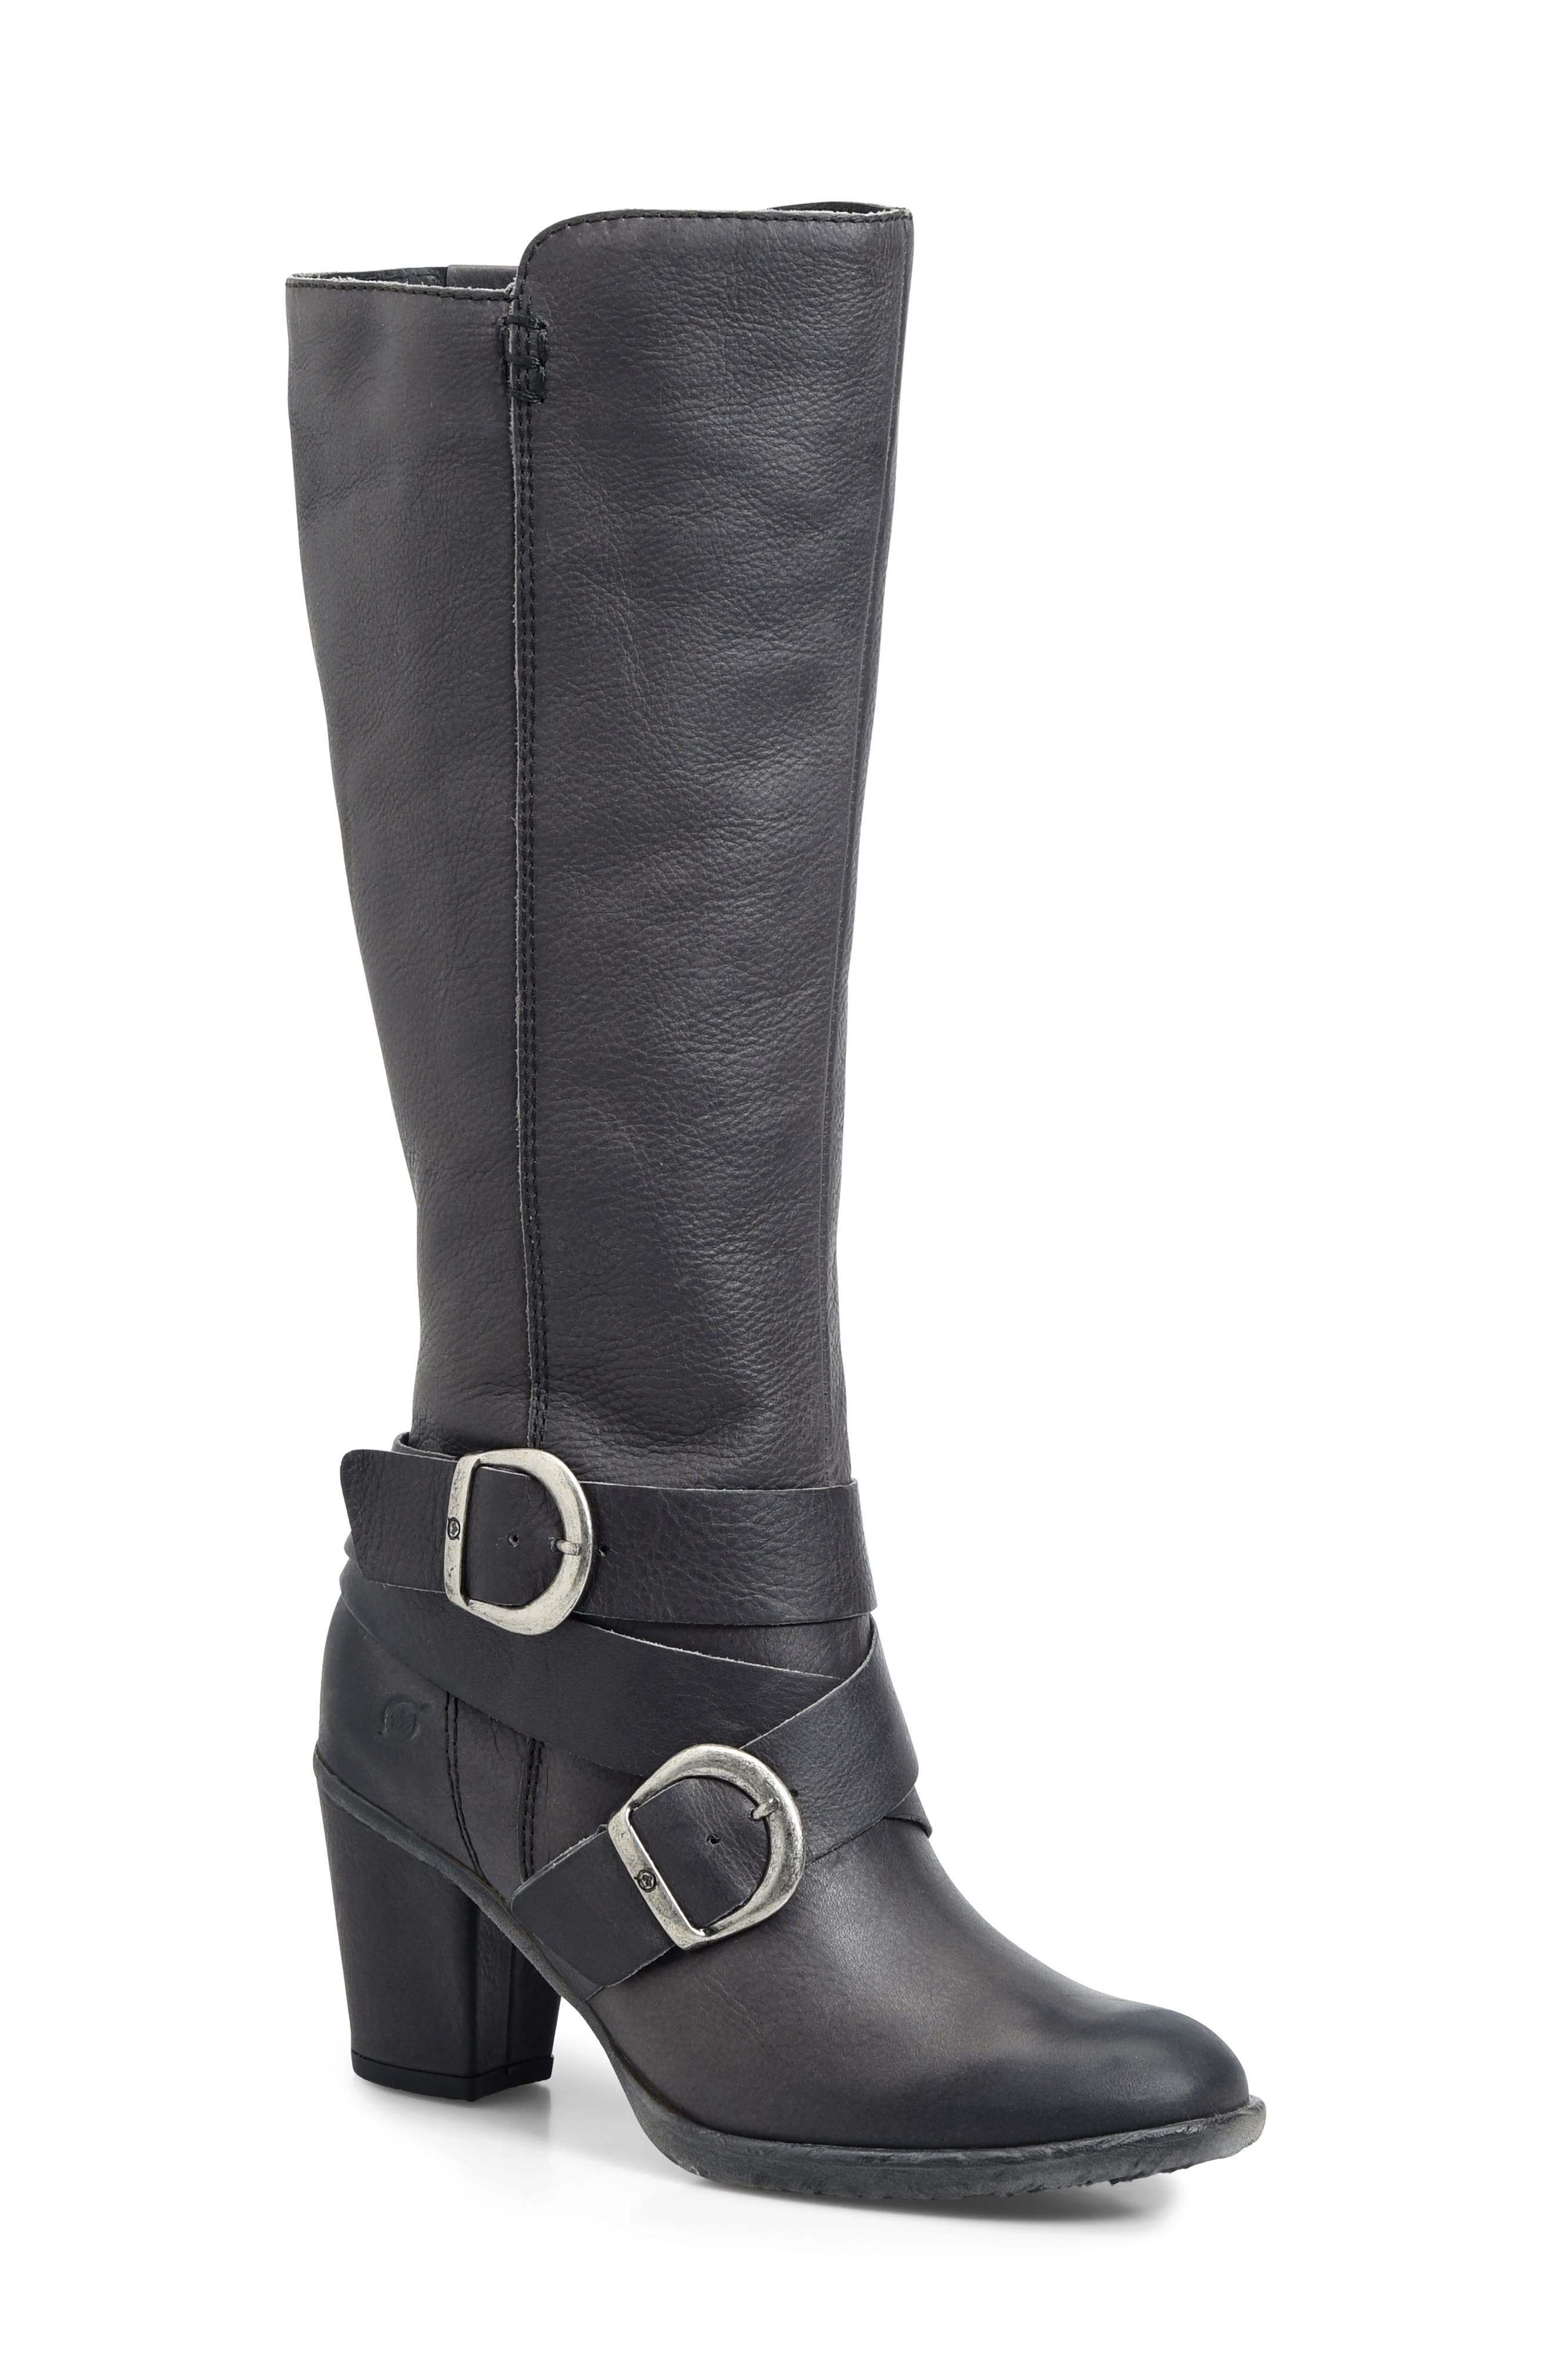 Cresent Knee High Boot,                             Main thumbnail 1, color,                             026